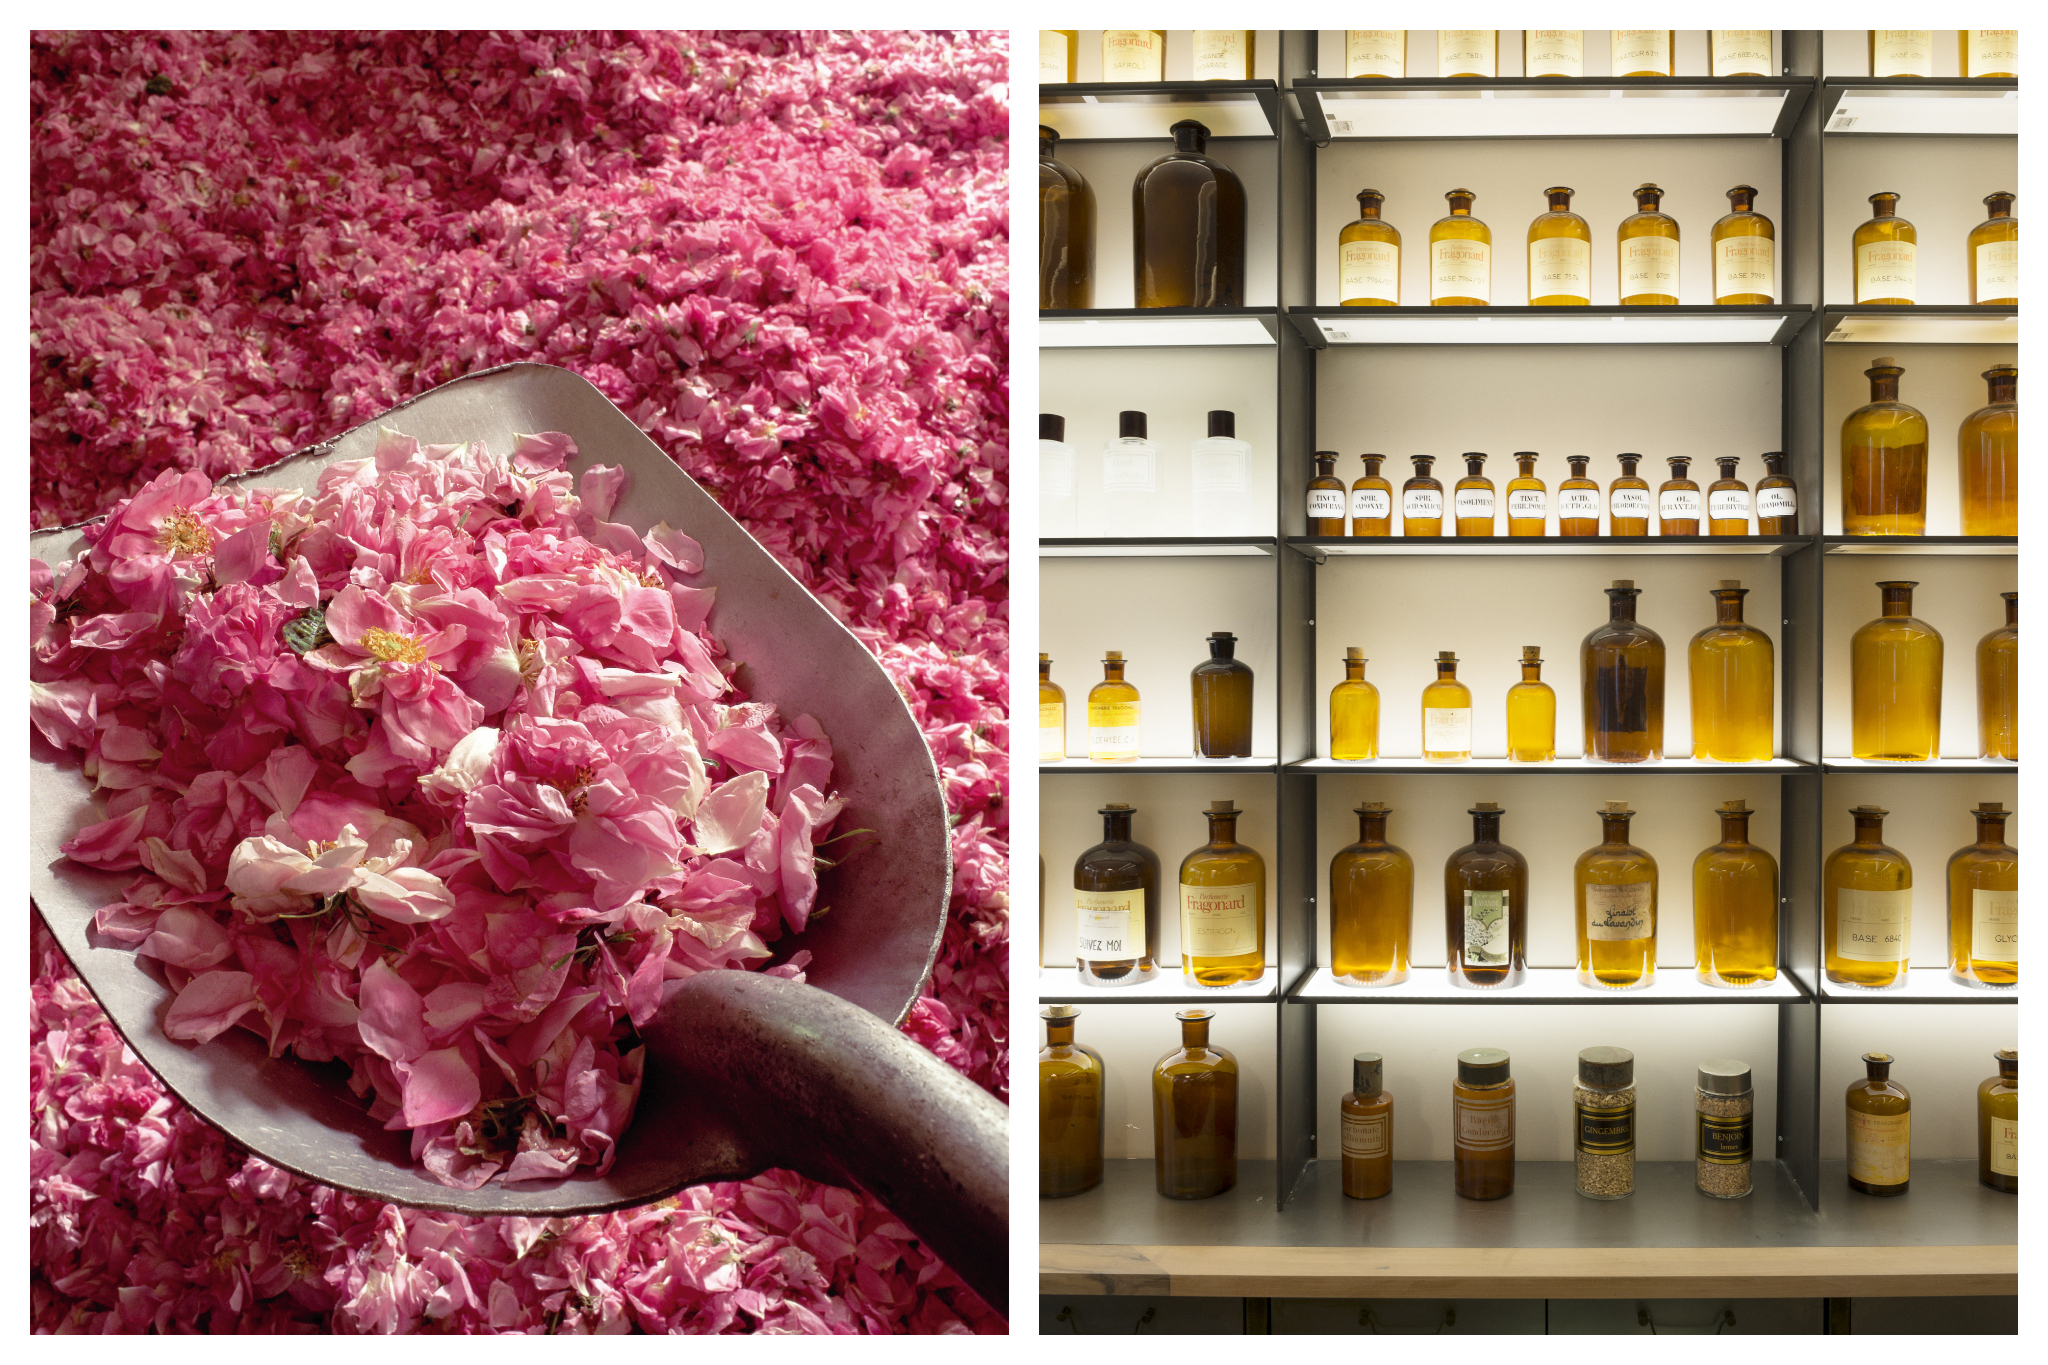 Left: A pale lifts bright pink rose petals from a pile in early May, Right: Backlit bottles of perfume line shelves in a Fragonard store in Paris